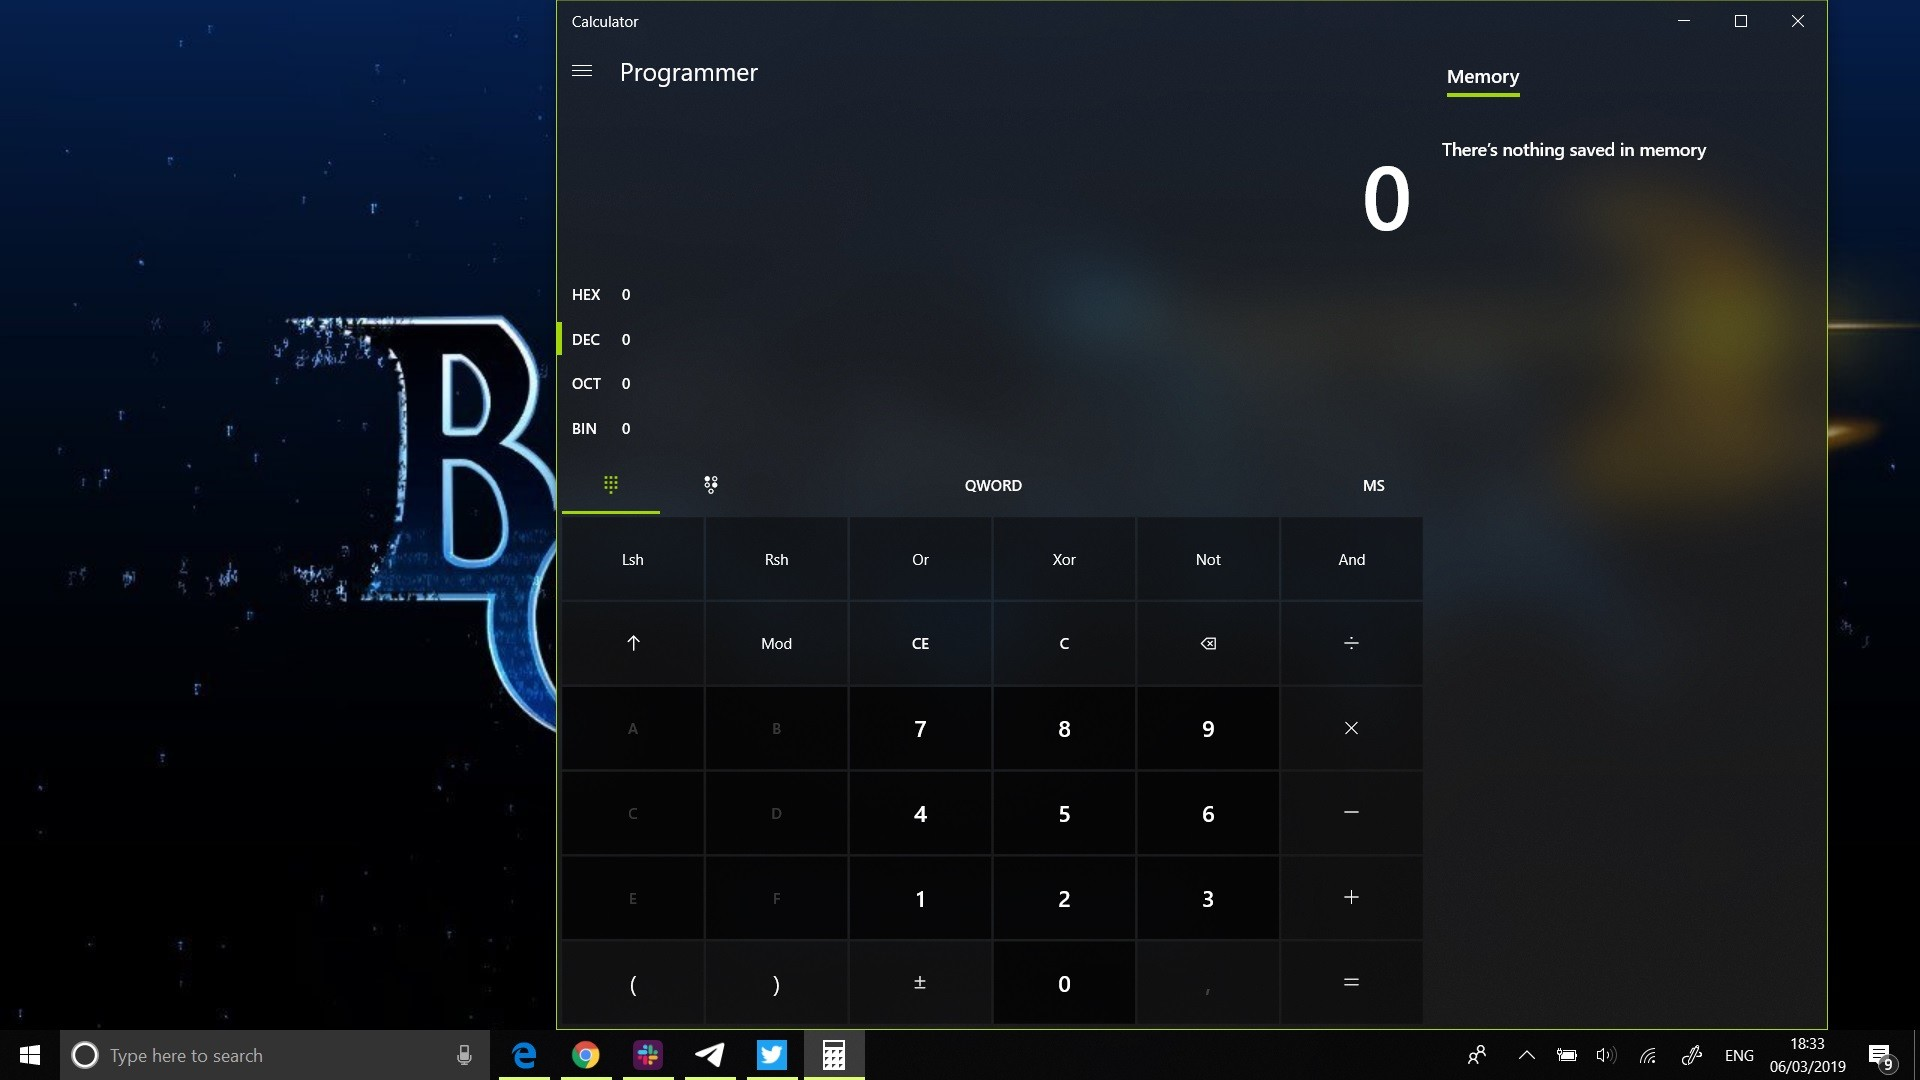 The Windows 10 Calculator app is getting a compact overlay